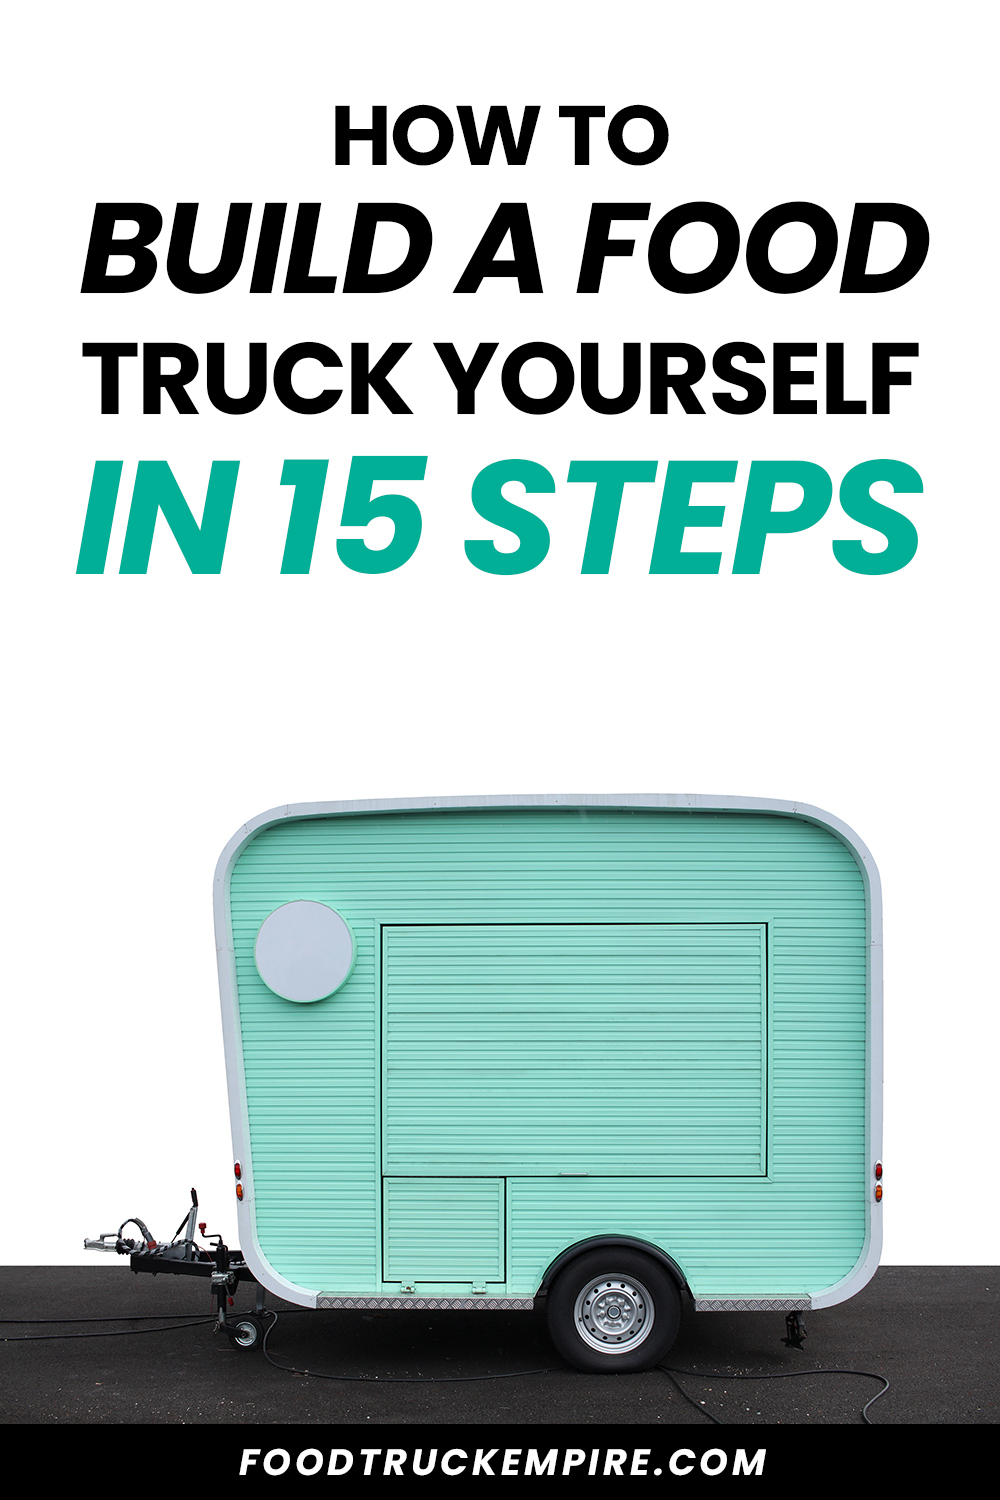 How to Build a Food Truck Yourself - A Simple Guide